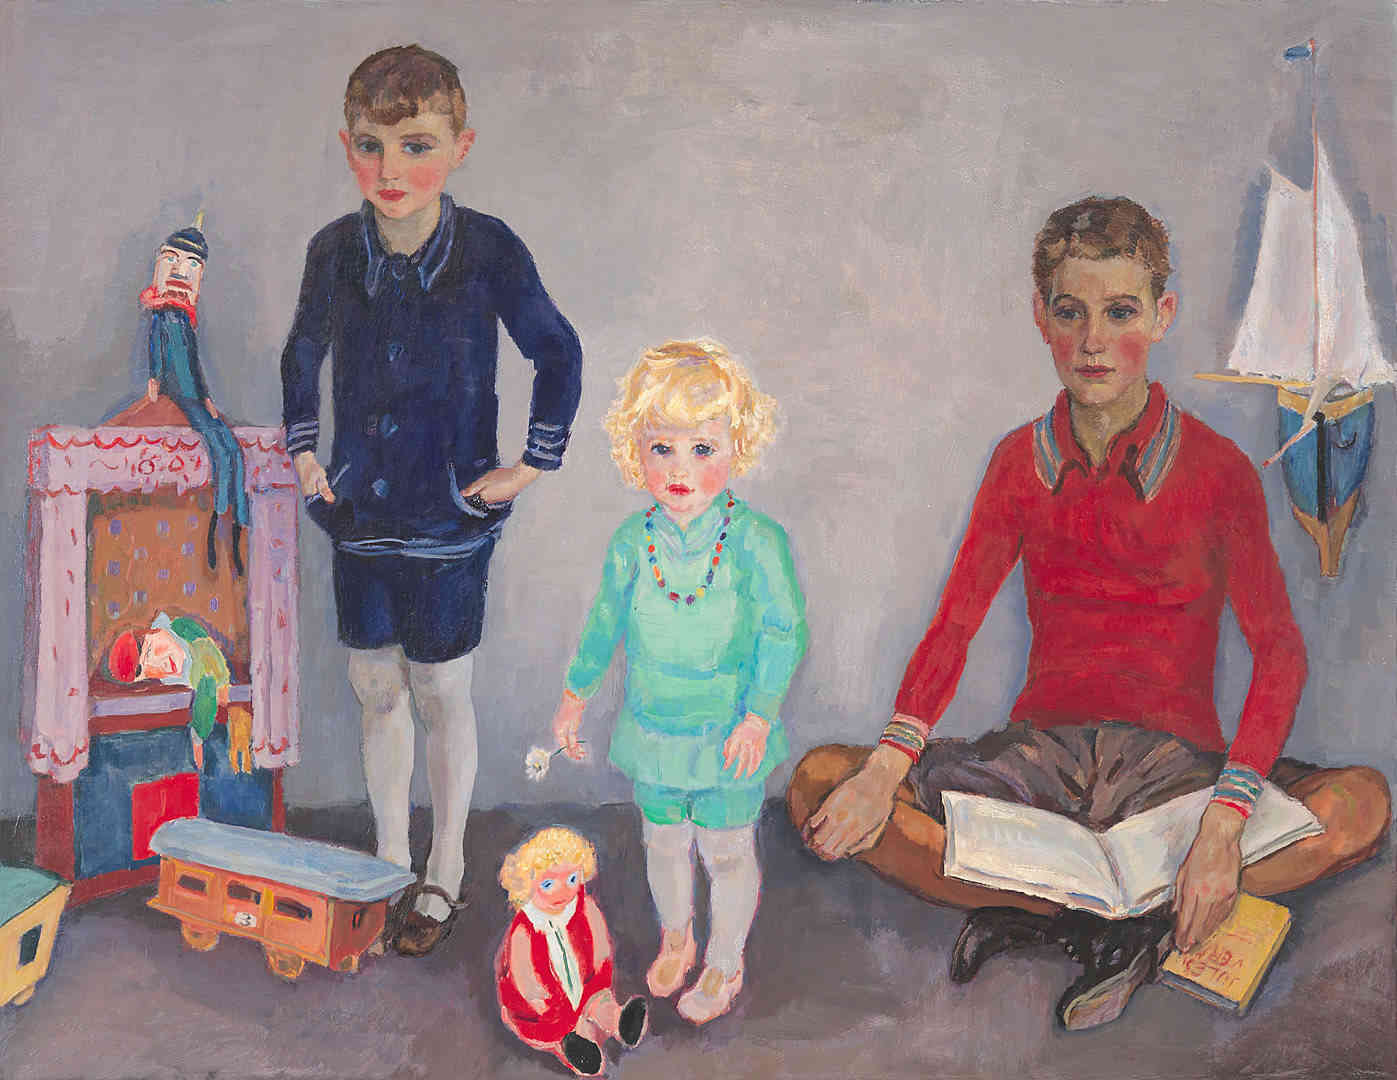 Jan, Rob en Liesje Sluijters Jan Sluijters (1881-1957) - Kunsthandel Studio 2000